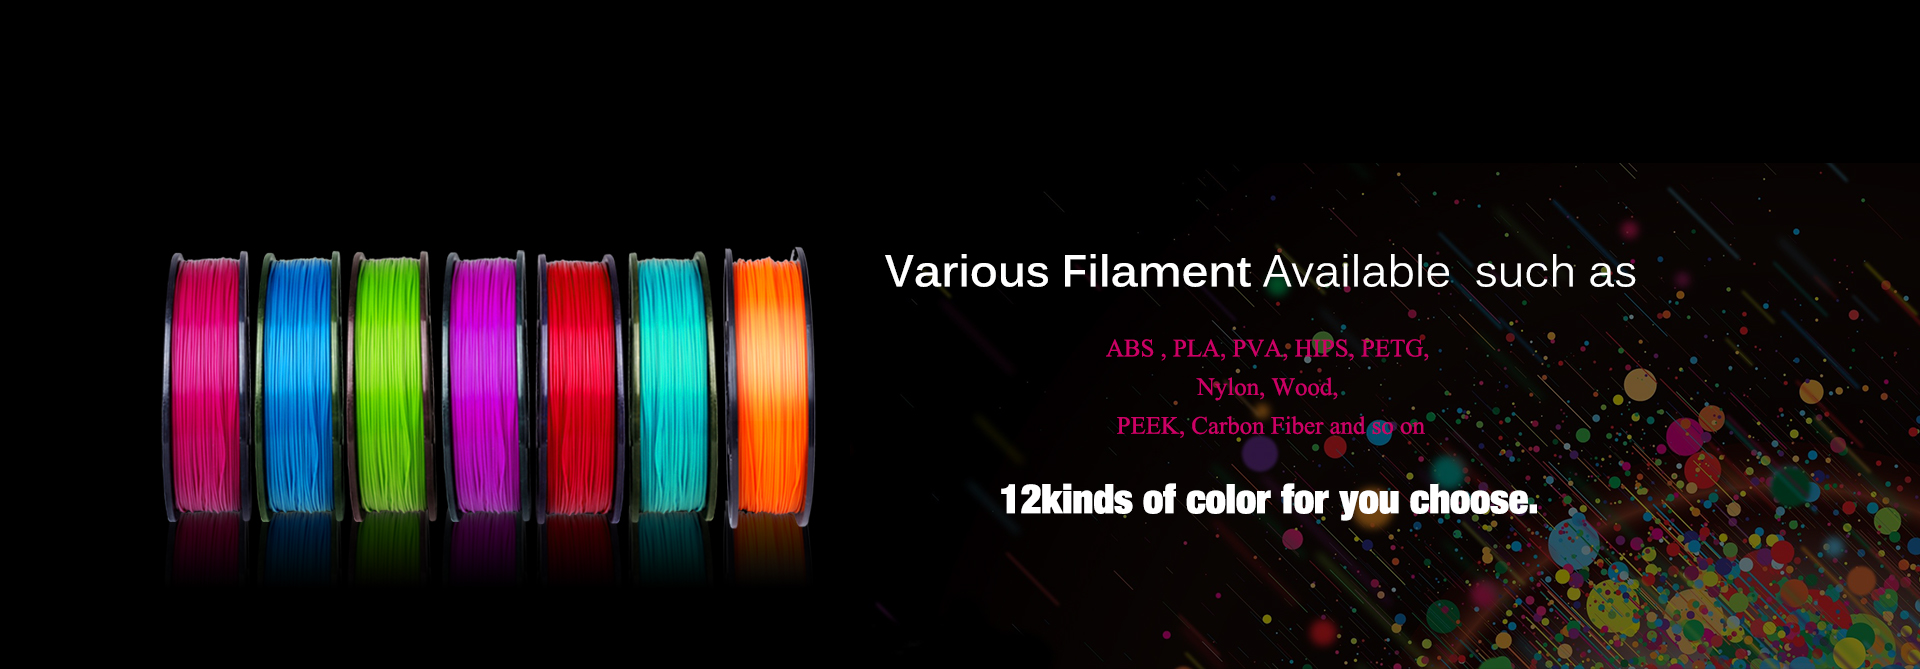 Various filament available